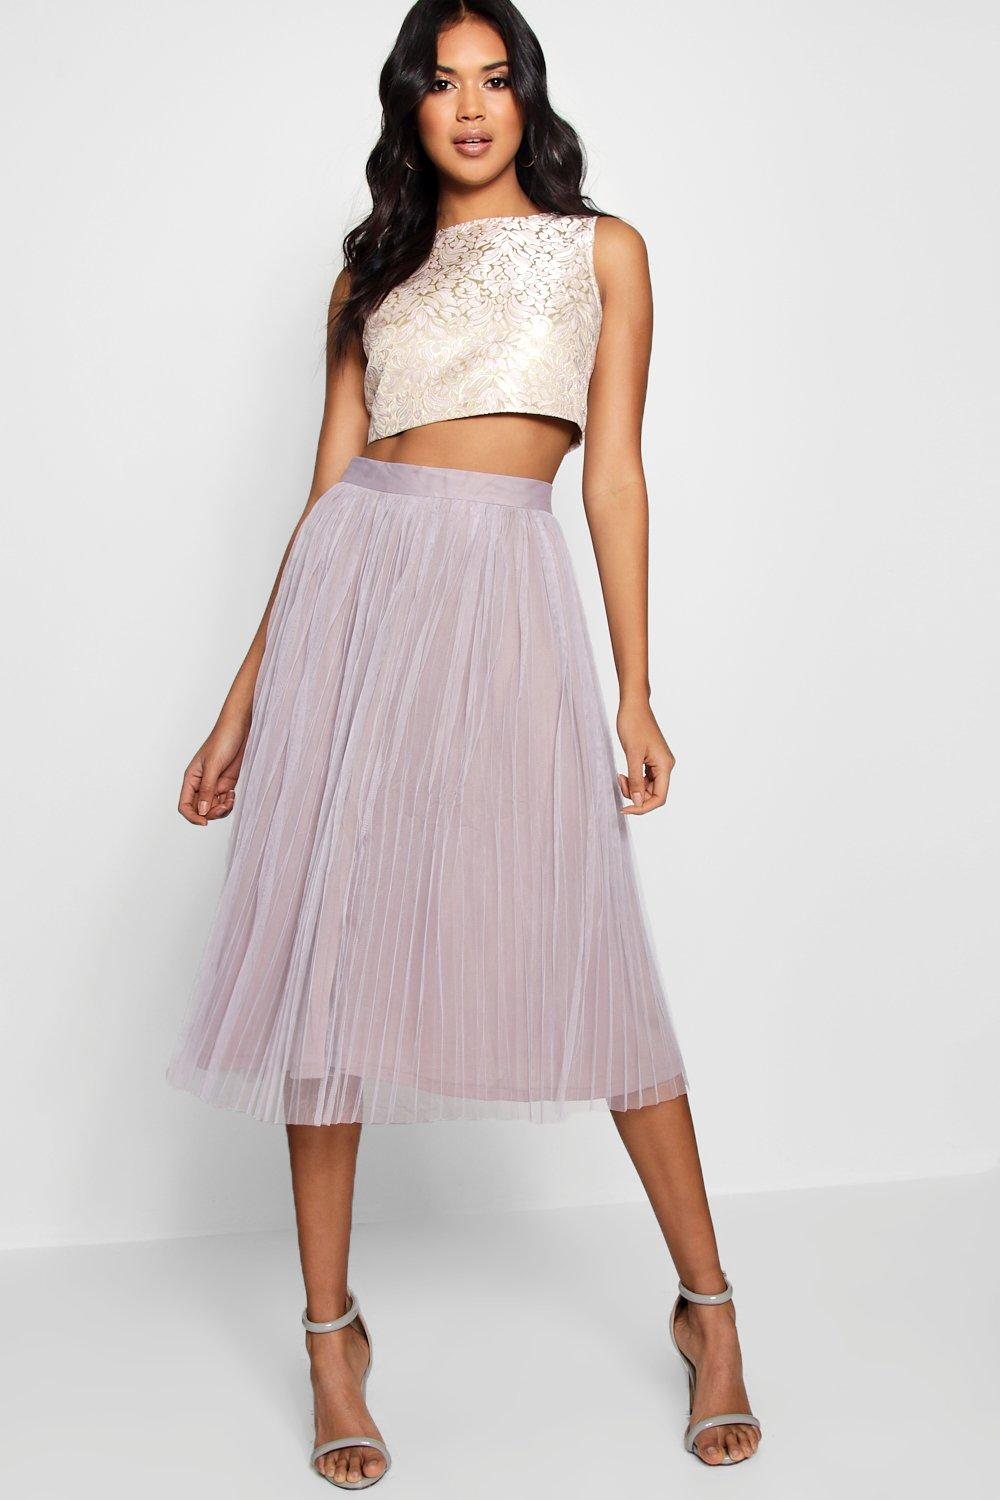 Boutique May Jacquard Top Midi Skirt Co-Ord Set | Boohoo